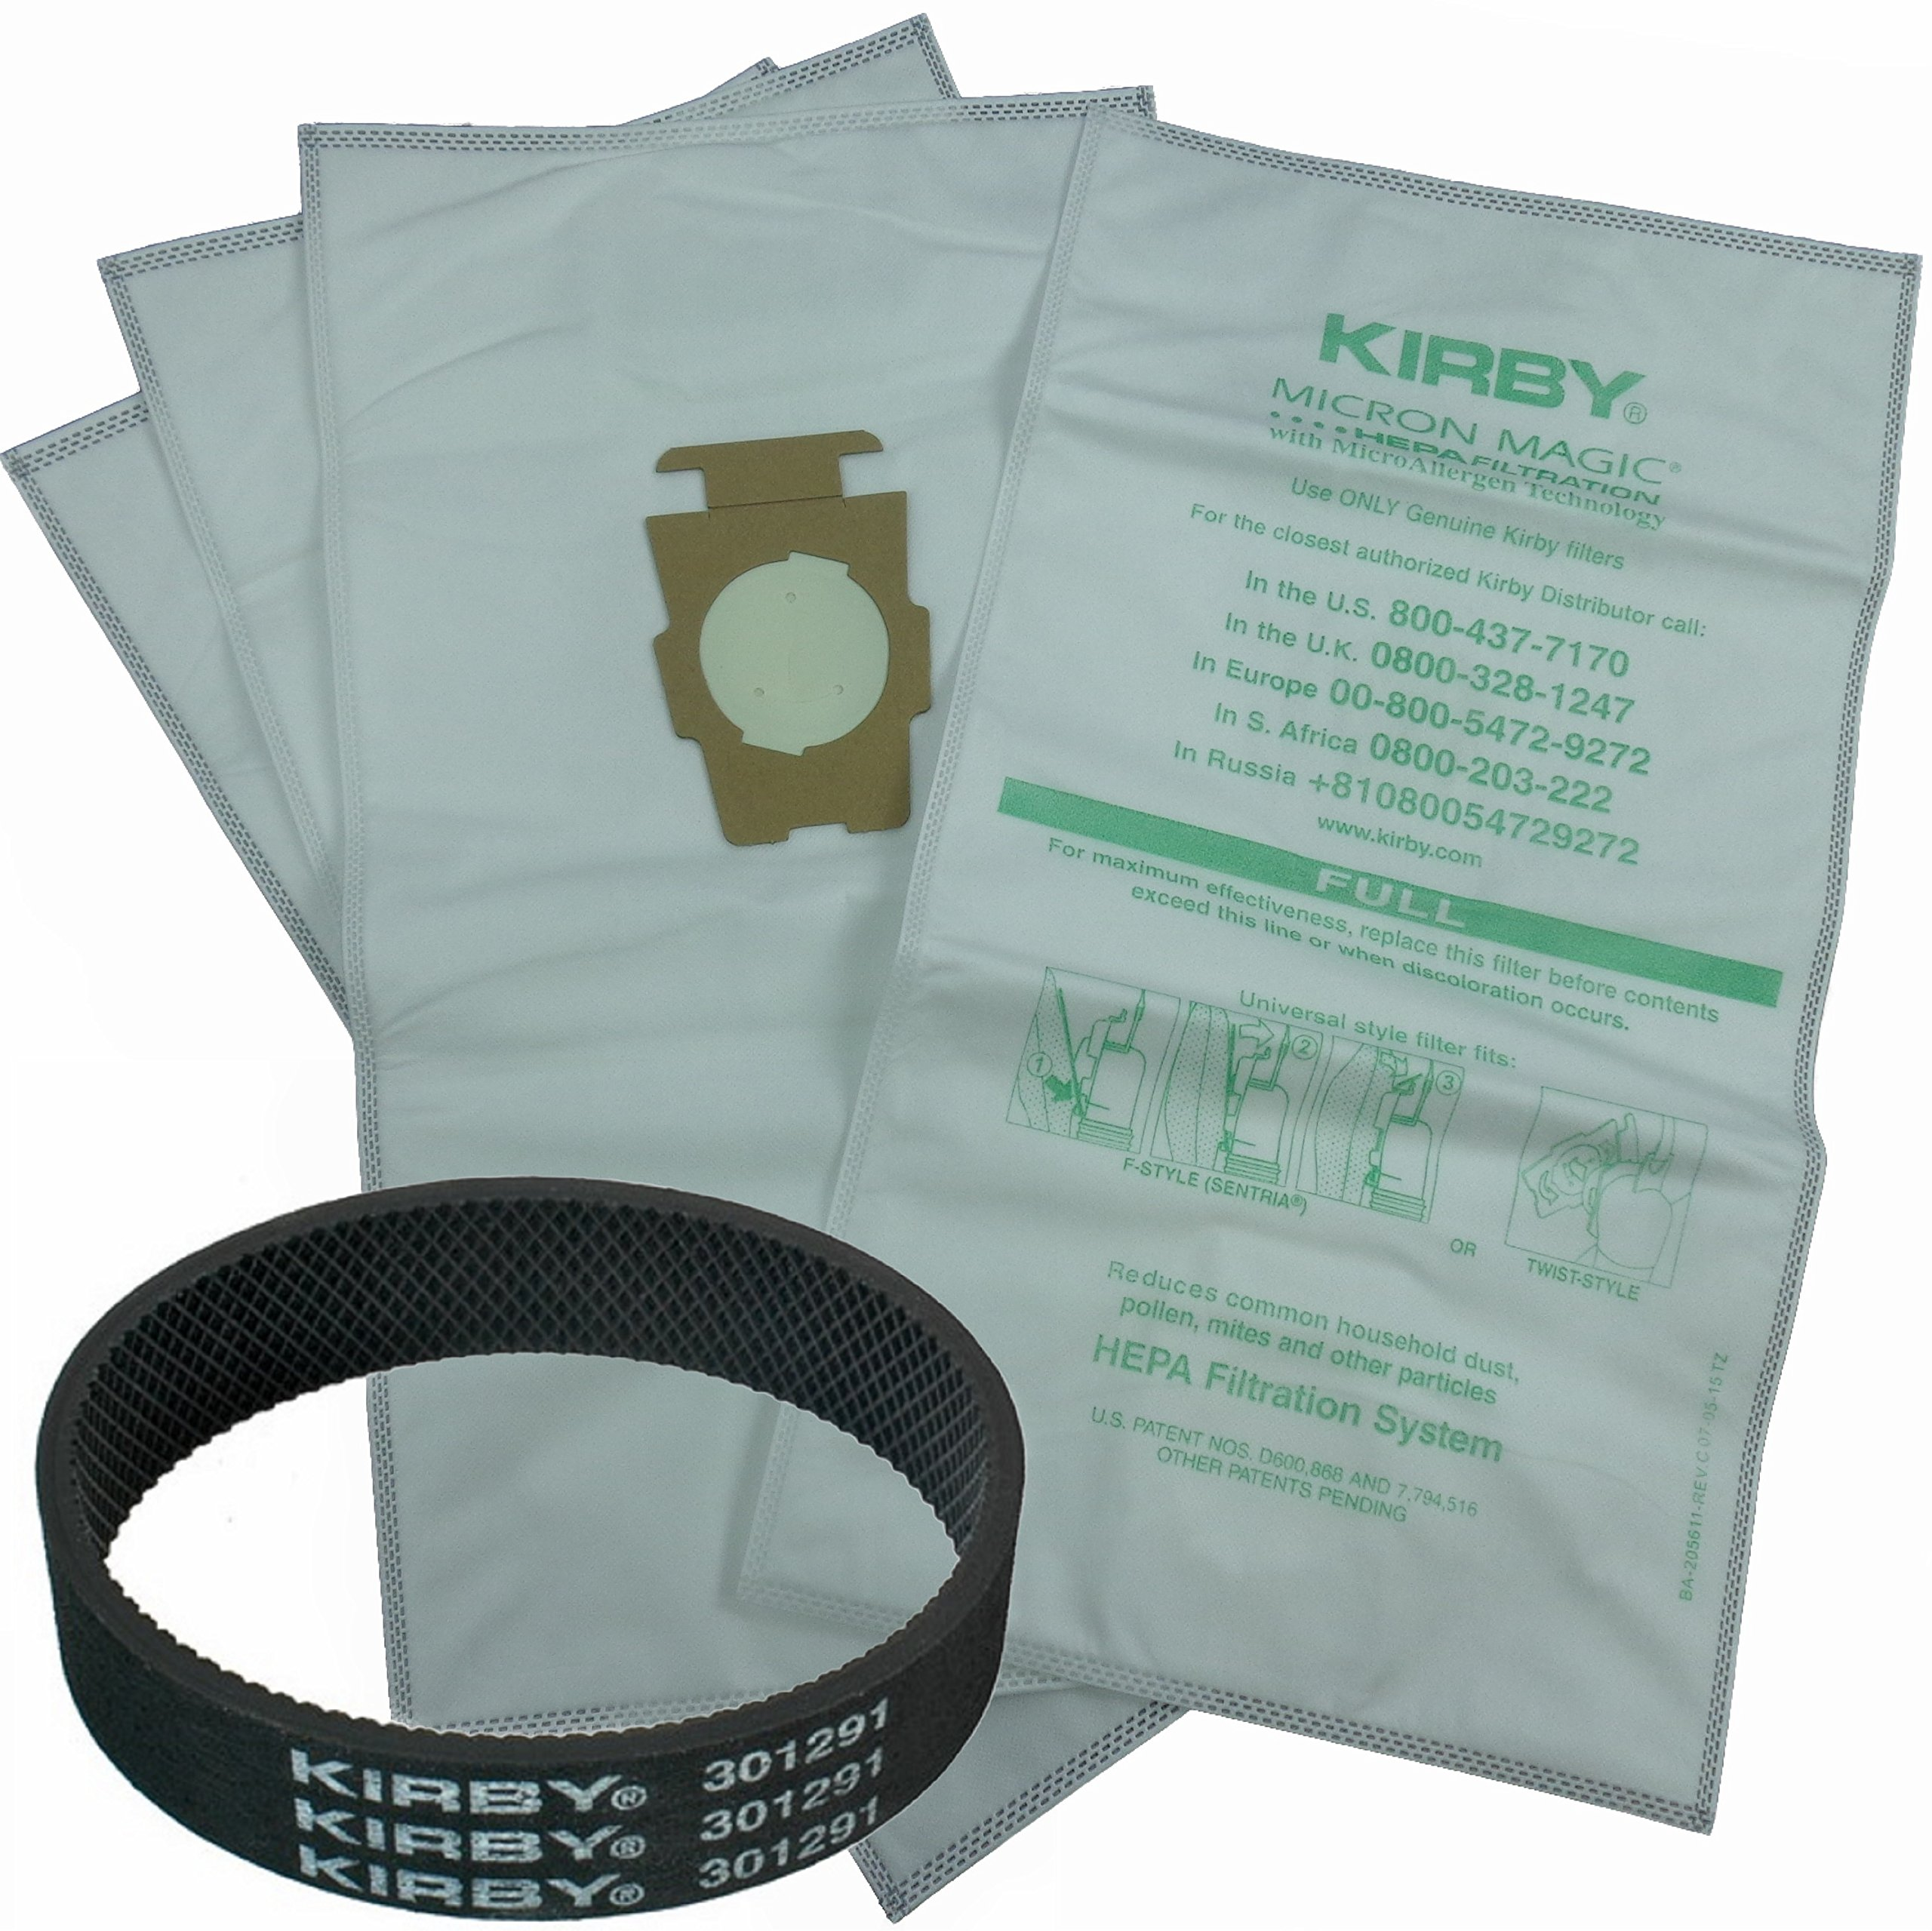 4 Kirby Allergen Micron Magic Universal F Style Turn Style Vacuum Bags & 1 Belt